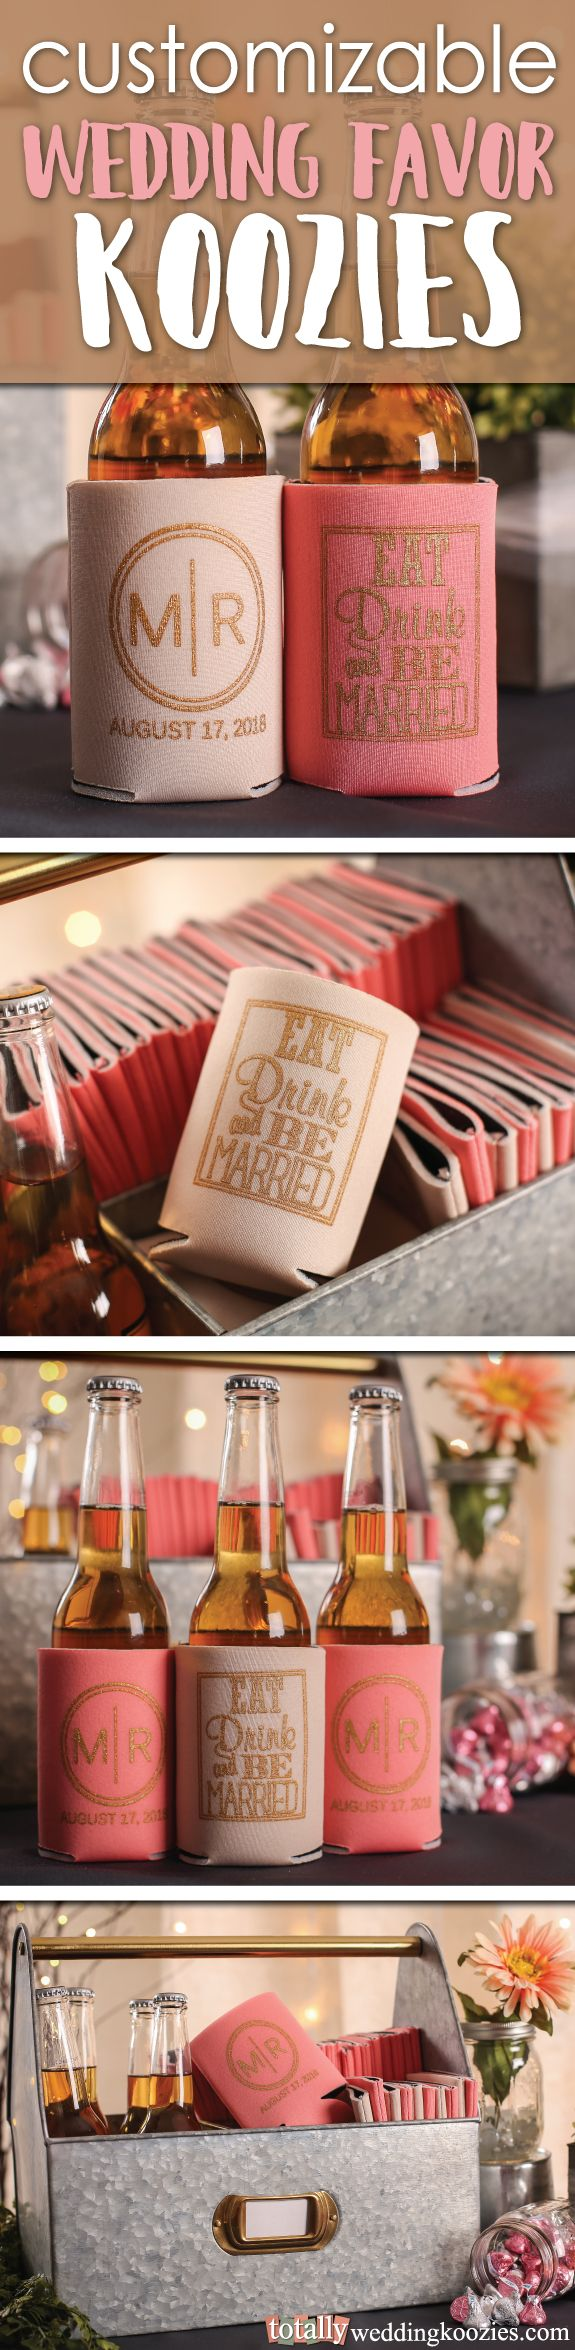 Our customizable wedding koozies® offer a unique and fun way to thank your guests! This product is offered in 45 product colors with 23 imprint colors to choose from, your options are endless! Every wedding koozie® order also comes with a FREE complimentary bride & groom koozie®!  Use coupon code PINFREESHIP and receive FREE Ground Shipping in the Continental United States!  KOOZIE® is a registered trademark of Norwood Promotional Products.